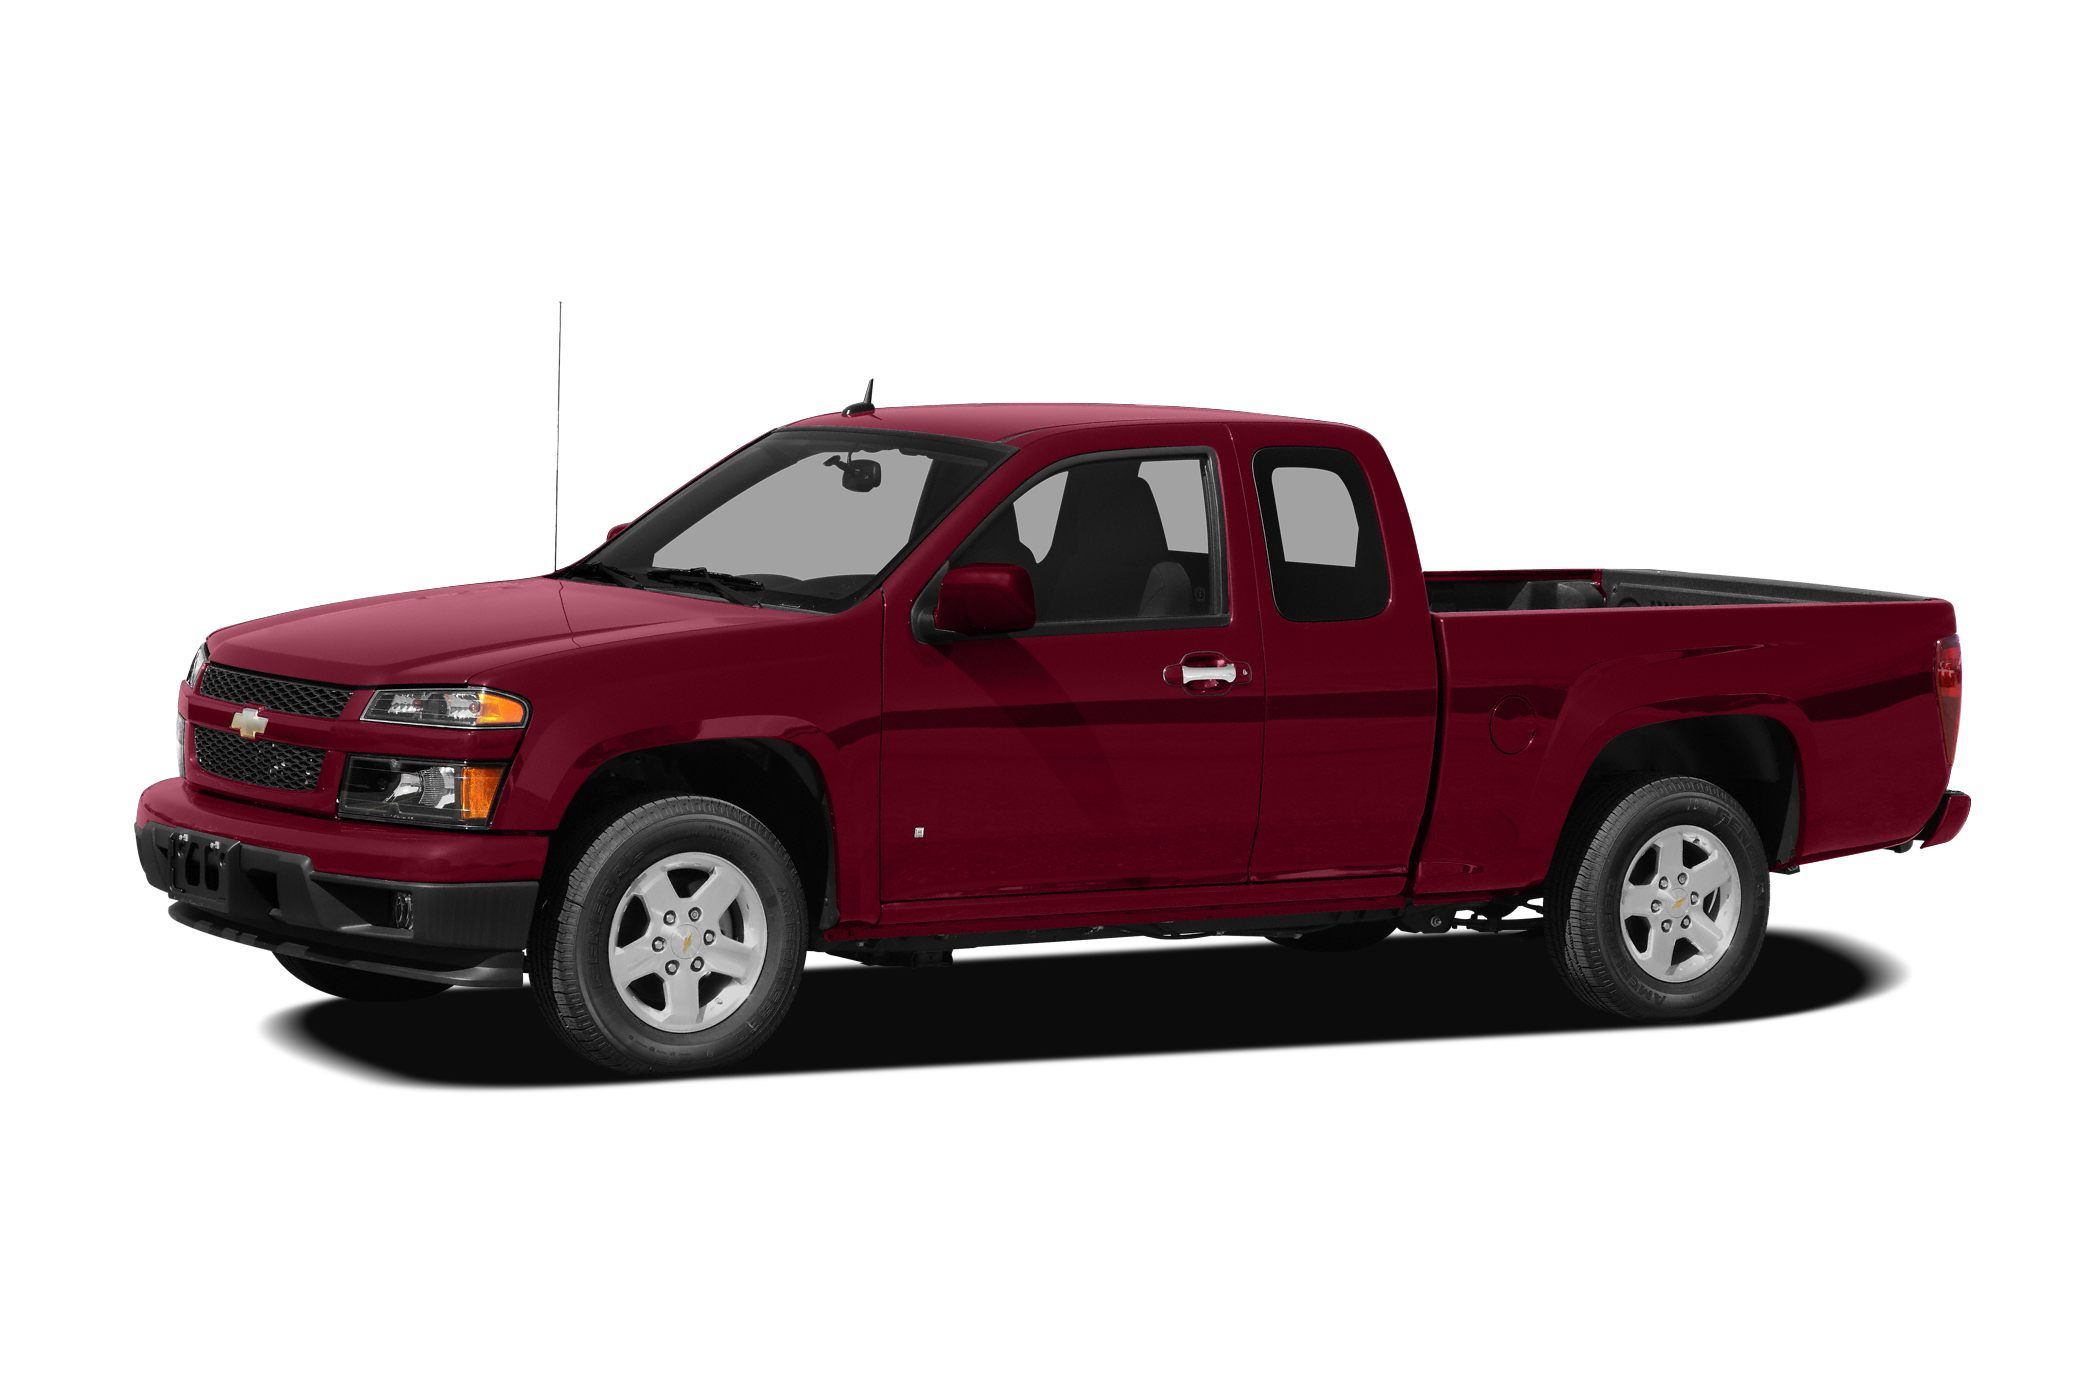 Tacoma V6 Towing Capacity >> 2011 Toyota Tacoma PreRunner V6 4x2 Access Cab 127.4 in ...